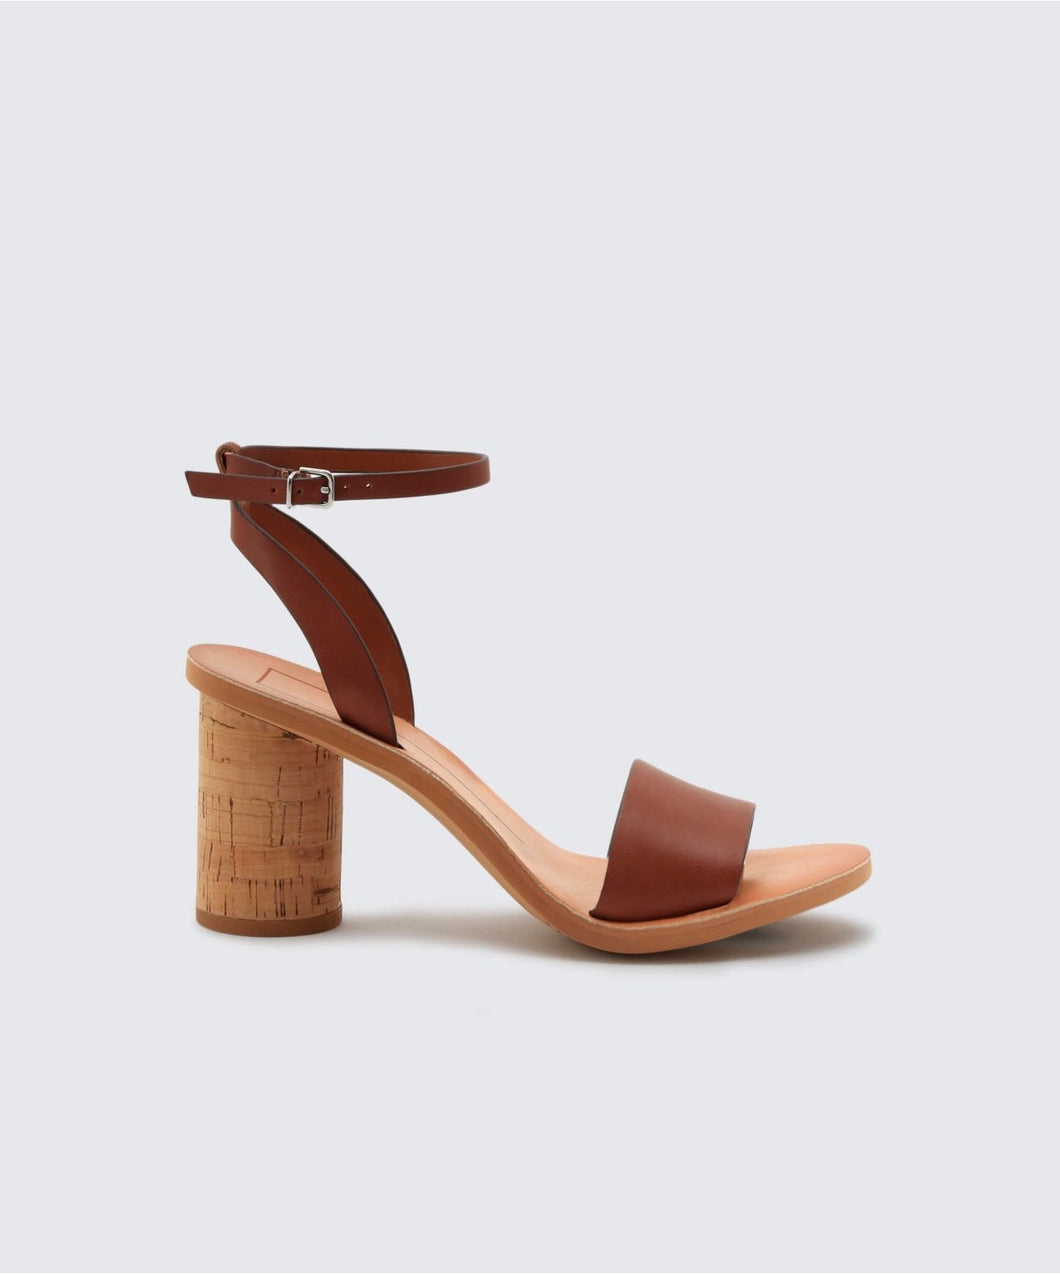 JALI HEELS IN BROWN -   Dolce Vita